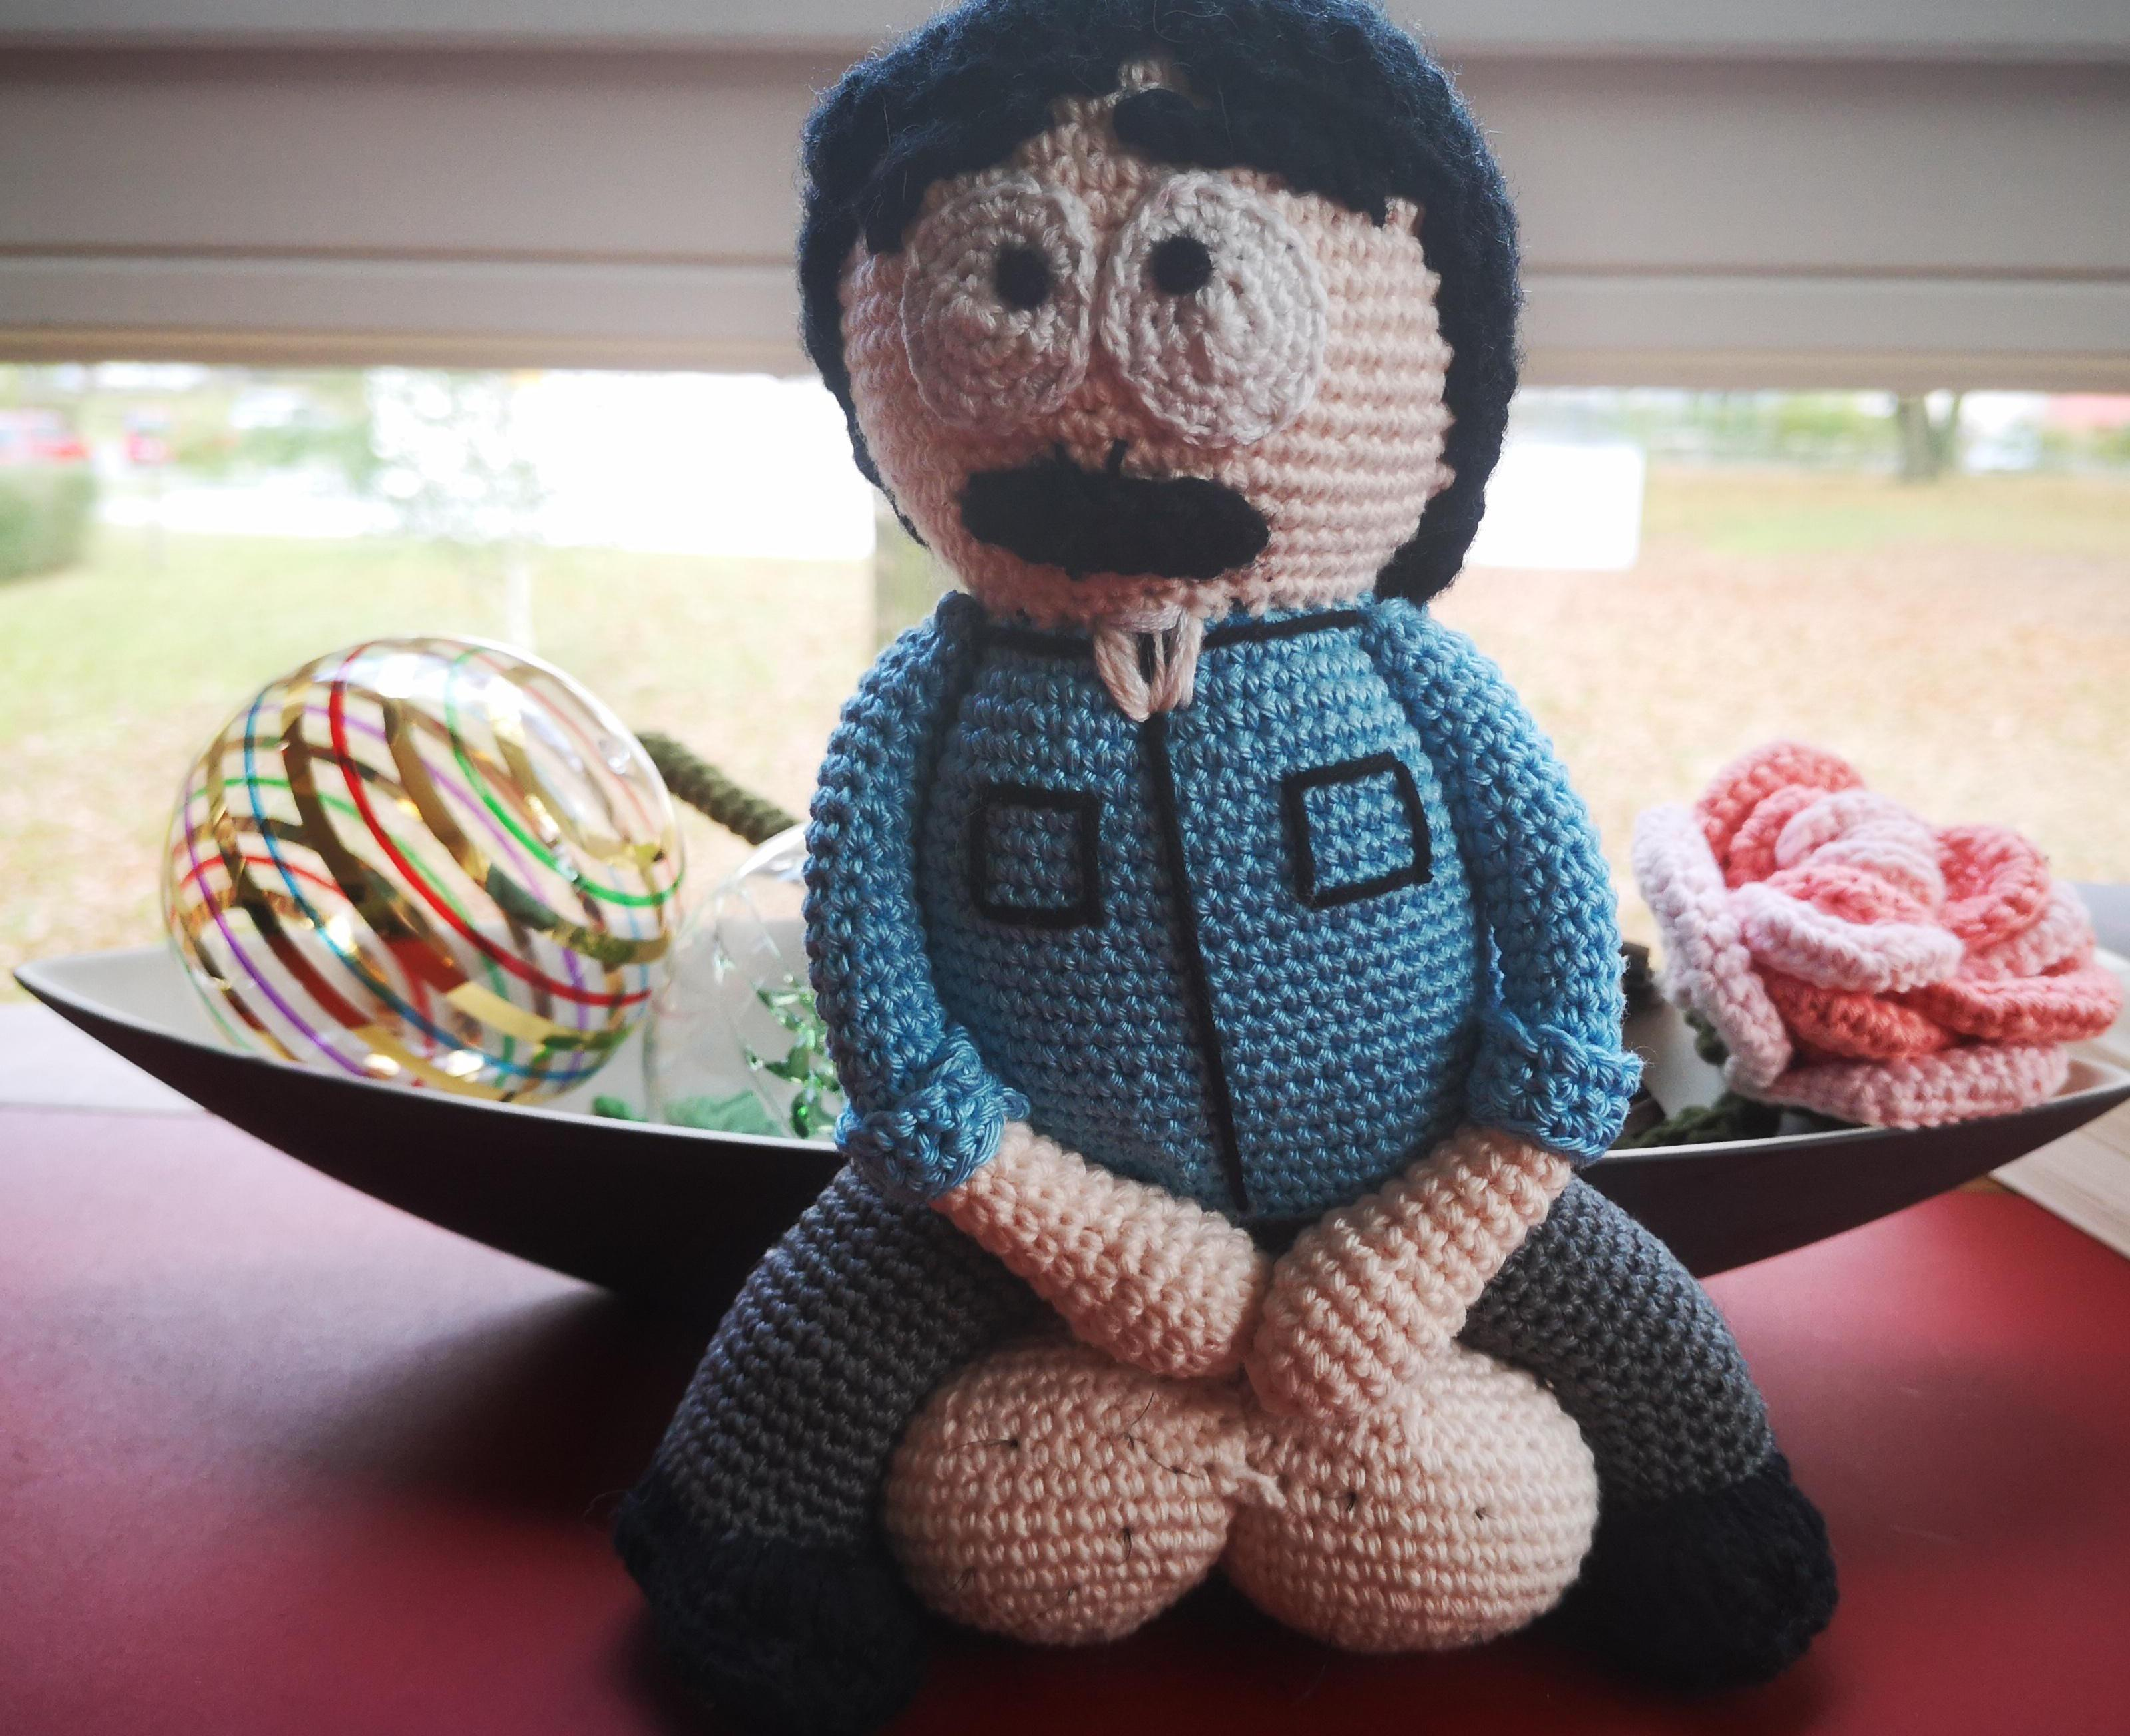 Made big balls Randy for a good friend a while ago. Was hard to let him go